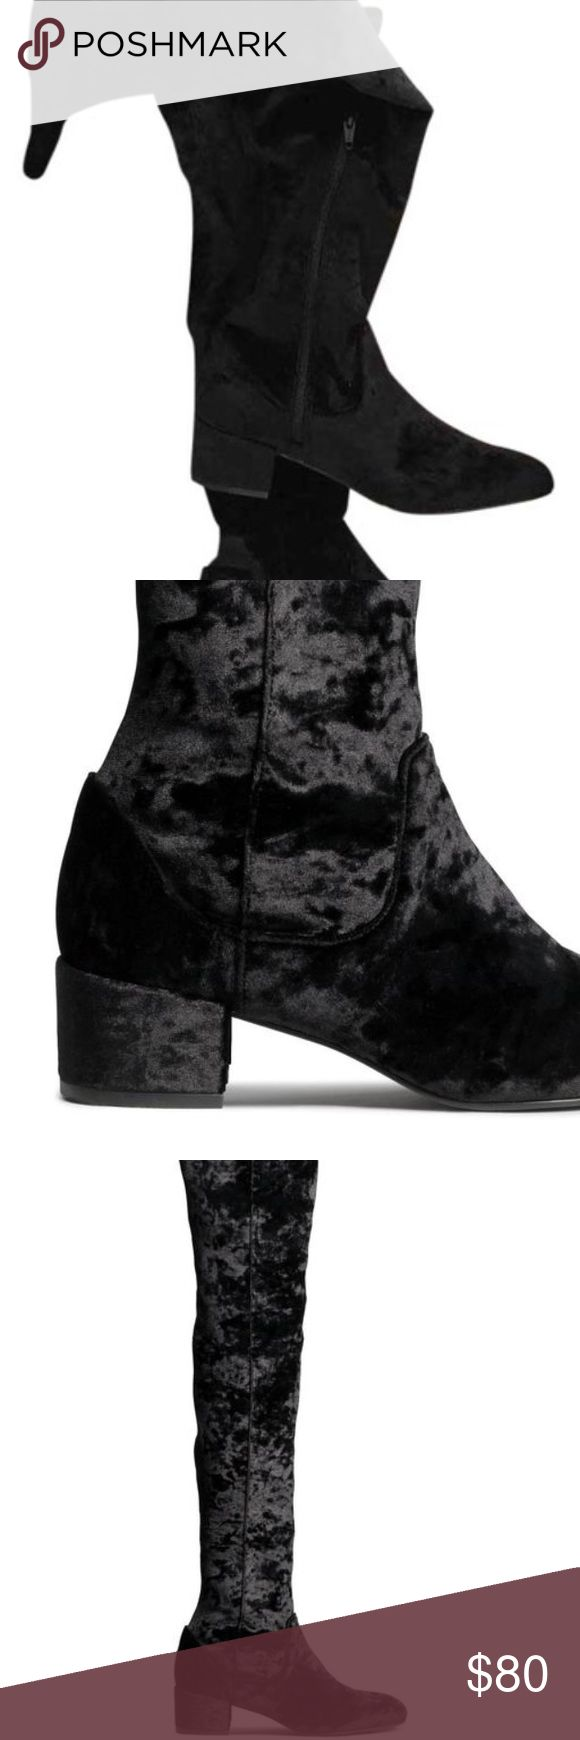 H&M Crushed Velvet Over The Knee Boots Black Sz 8 Worn once, H&M Boots in Black Crushed Velvet, stretch thigh high, size 8 - worn 2x H&M Shoes Over the Knee Boots